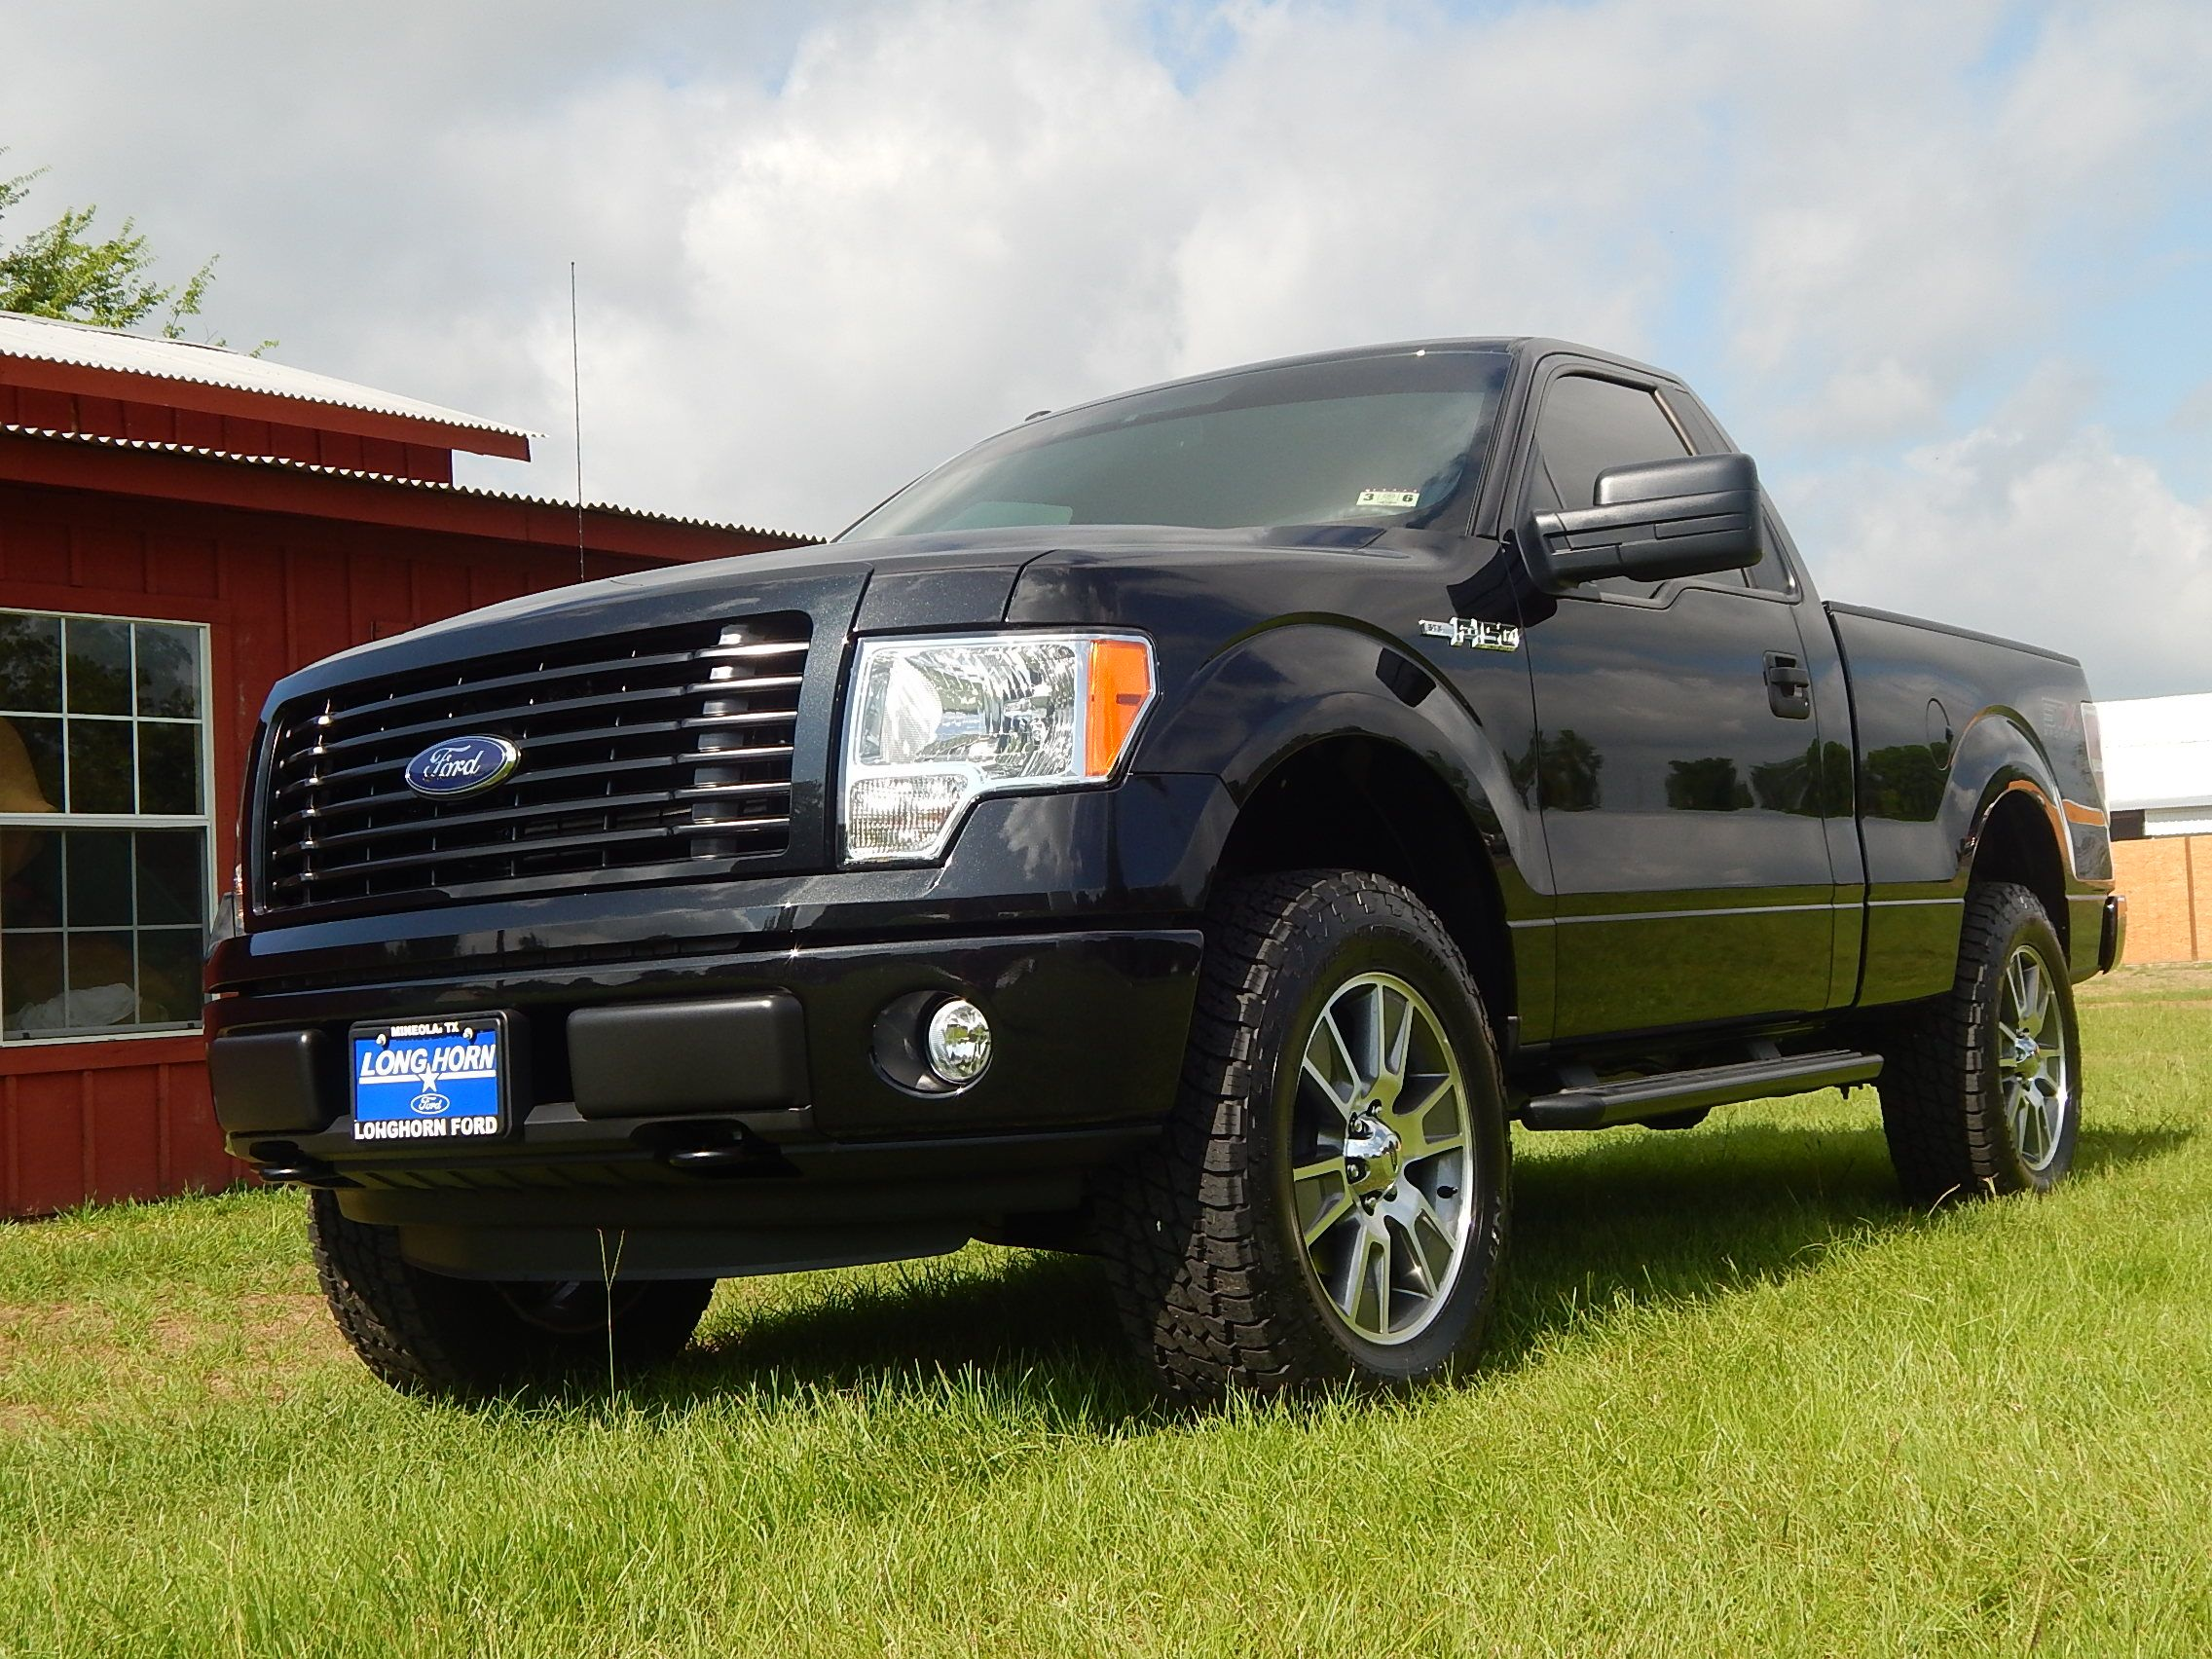 2014 Ford F 150 Stx Regular Cab 4x4 With A Custom Leveling Kit 20 Inch Nitto Tires Custom Window Tinting And A Durable Built Ford Tough Ford Trucks Ford F150